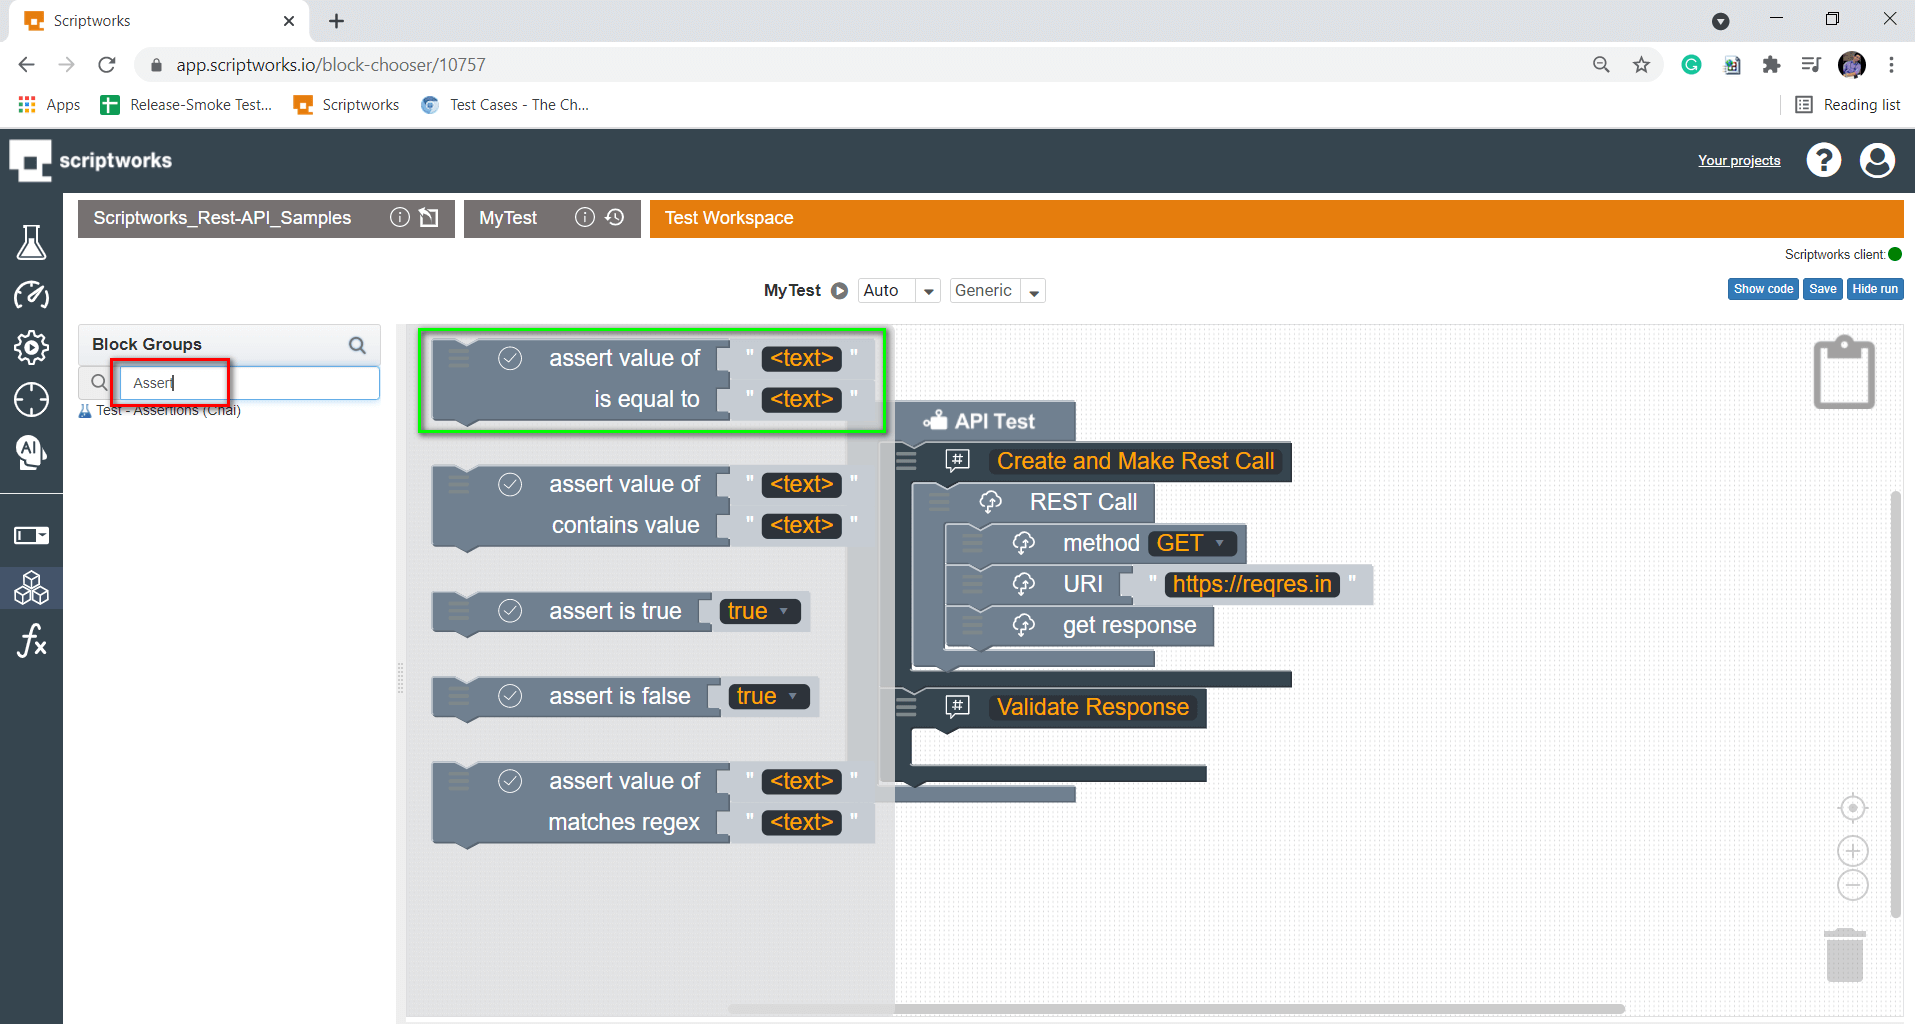 search assert from the search box